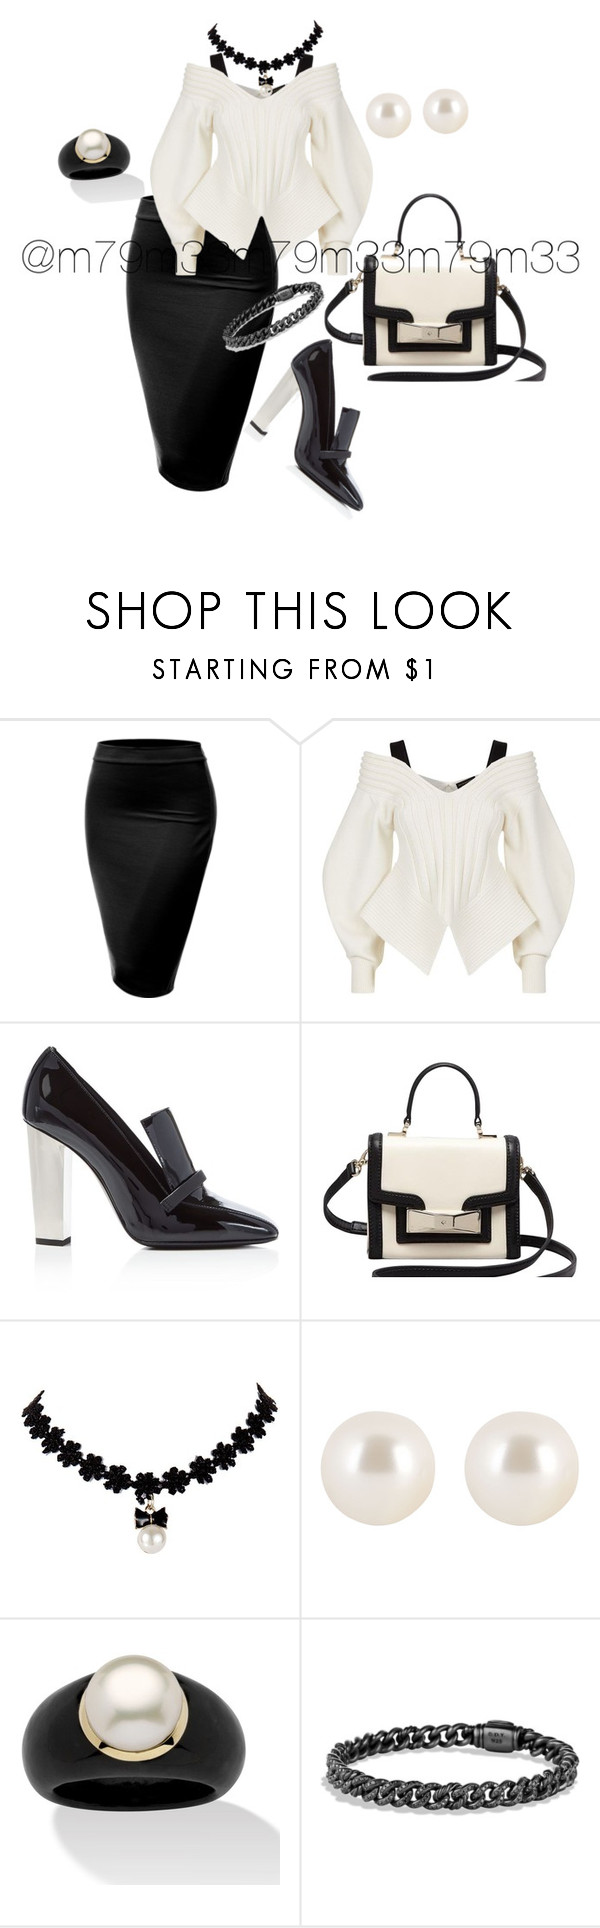 """Untitled #211"" by m79m33 ❤ liked on Polyvore featuring J.TOMSON, Burberry, Giuseppe Zanotti, Kate Spade, Henri Bendel and Palm Beach Jewelry"